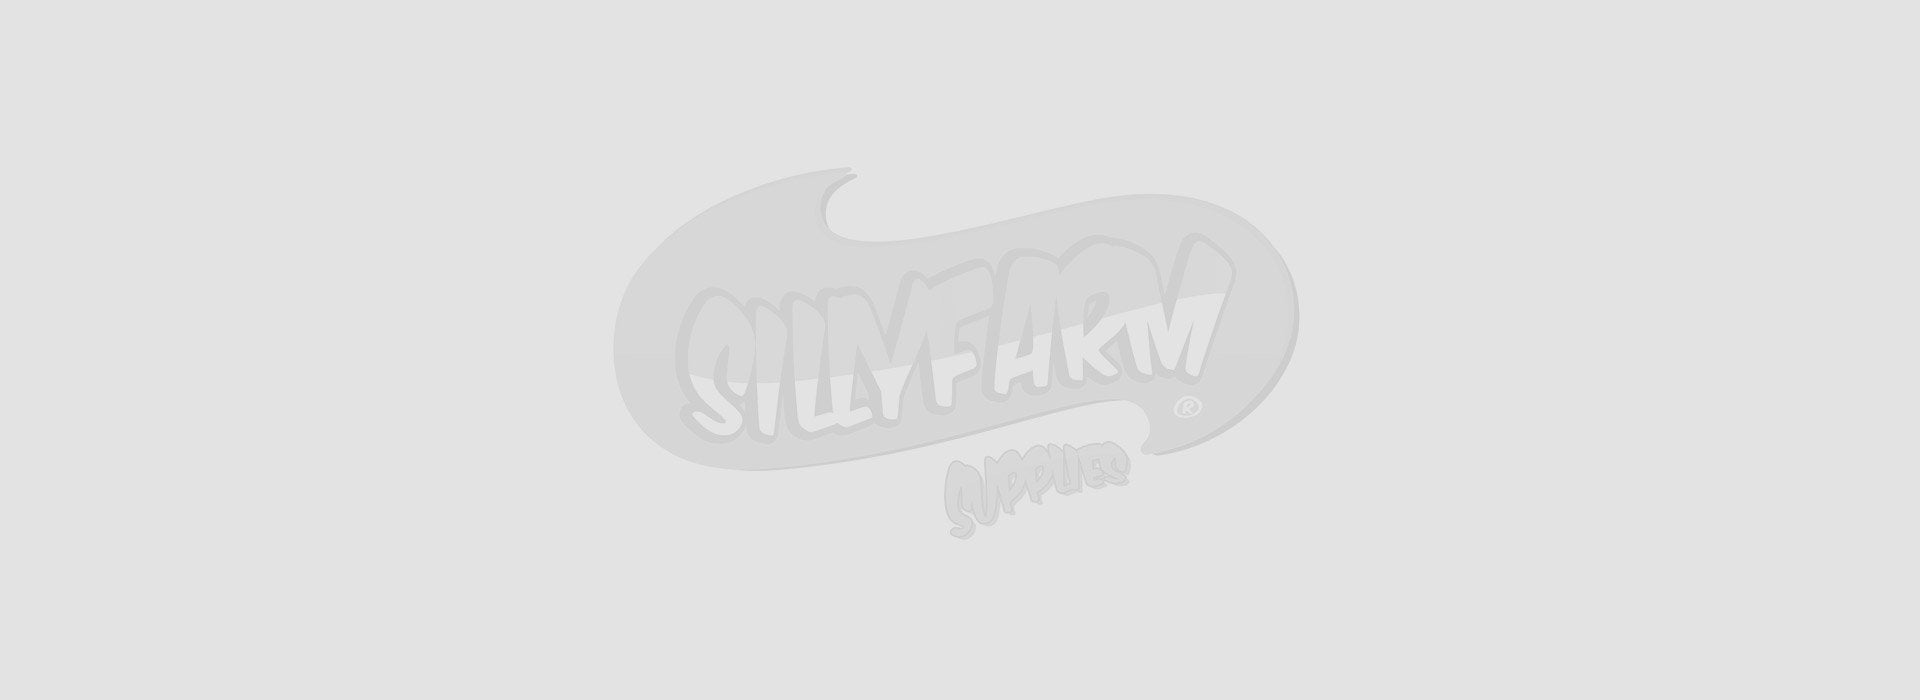 Images Upload Collection | Silly Farm Supplies